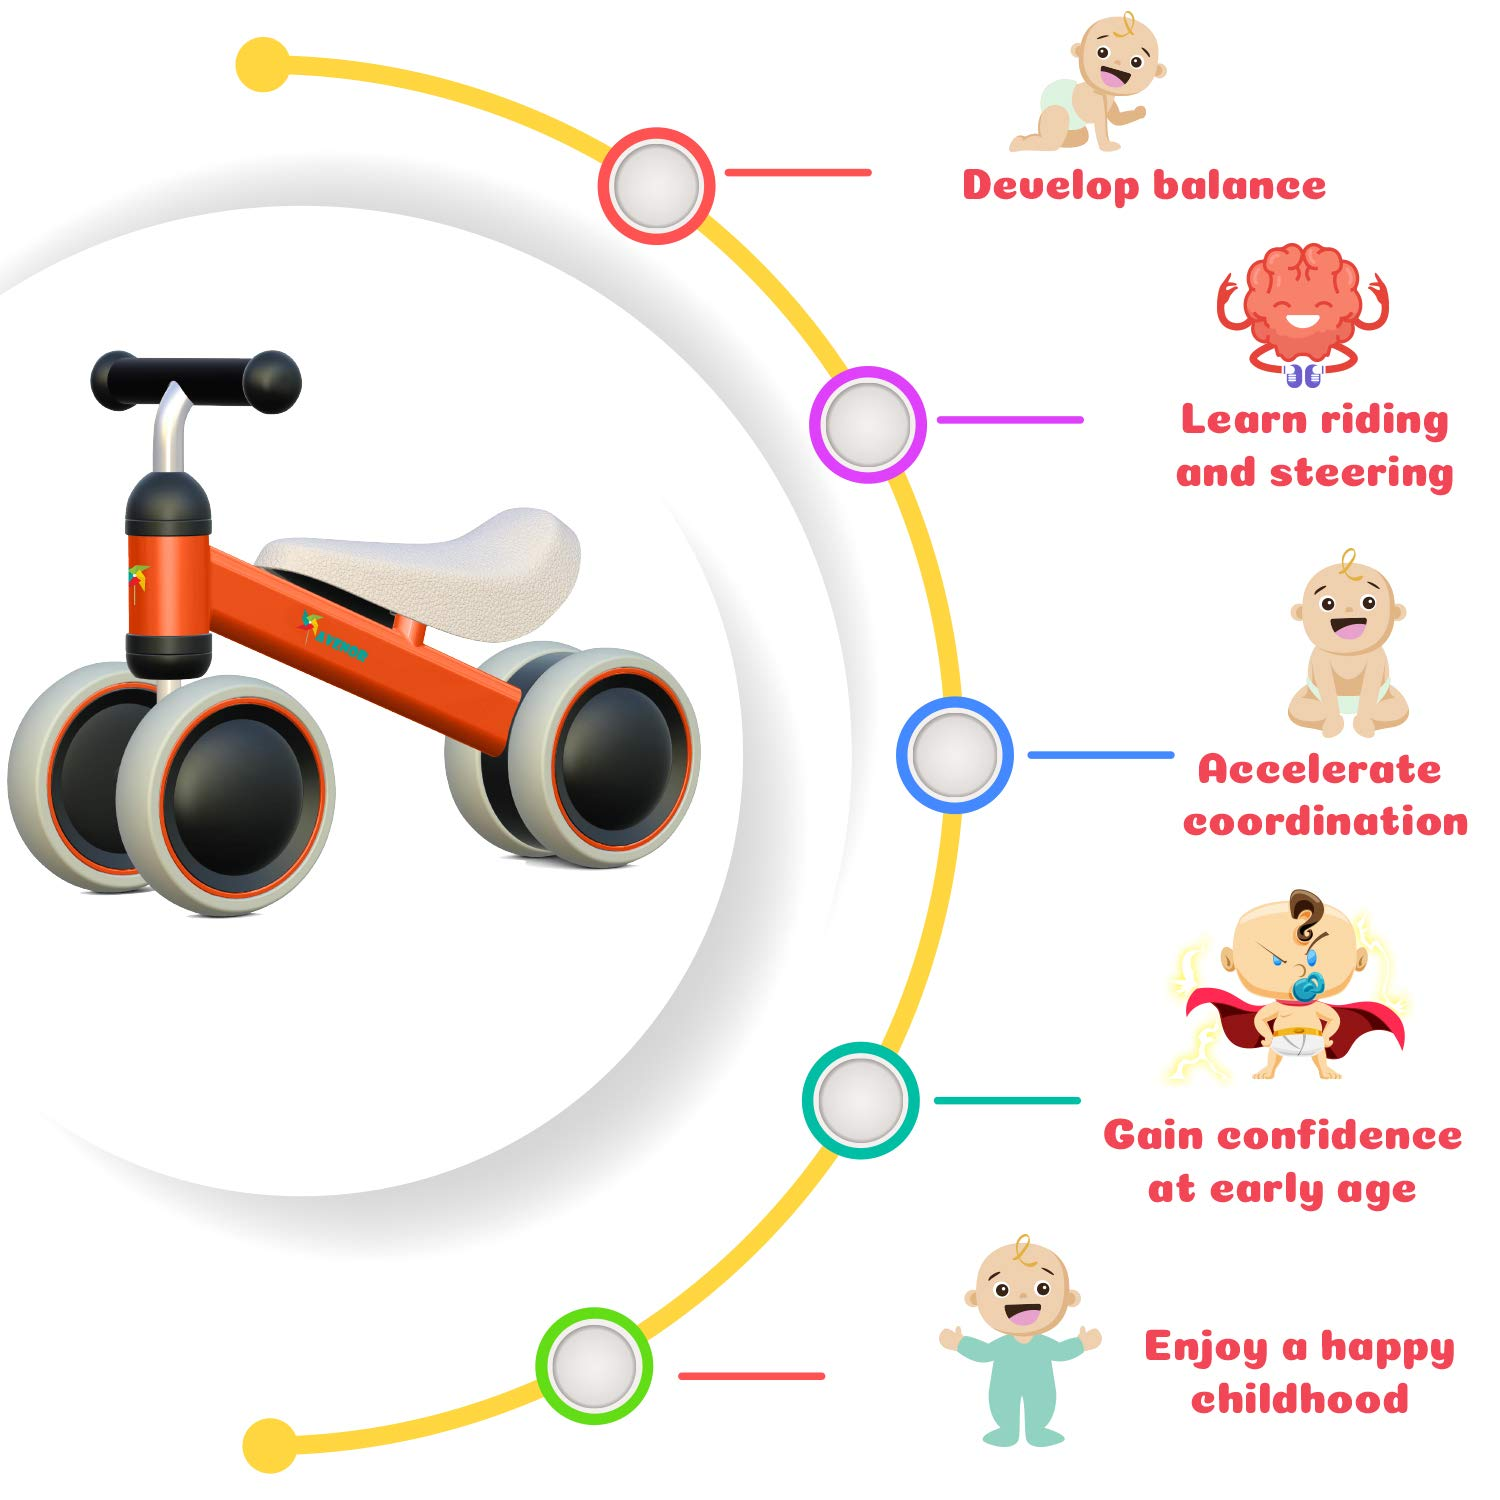 Avenor Baby Balance Bike - Baby Bicycle for 6-24 Months, Sturdy Balance Bike for 1 Year Old, Perfect as First Bike or Birthday Gift, Safe Riding Toys for 1 Year Old Boy Girl Ideal Baby Bike (Orange) by Avenor (Image #5)